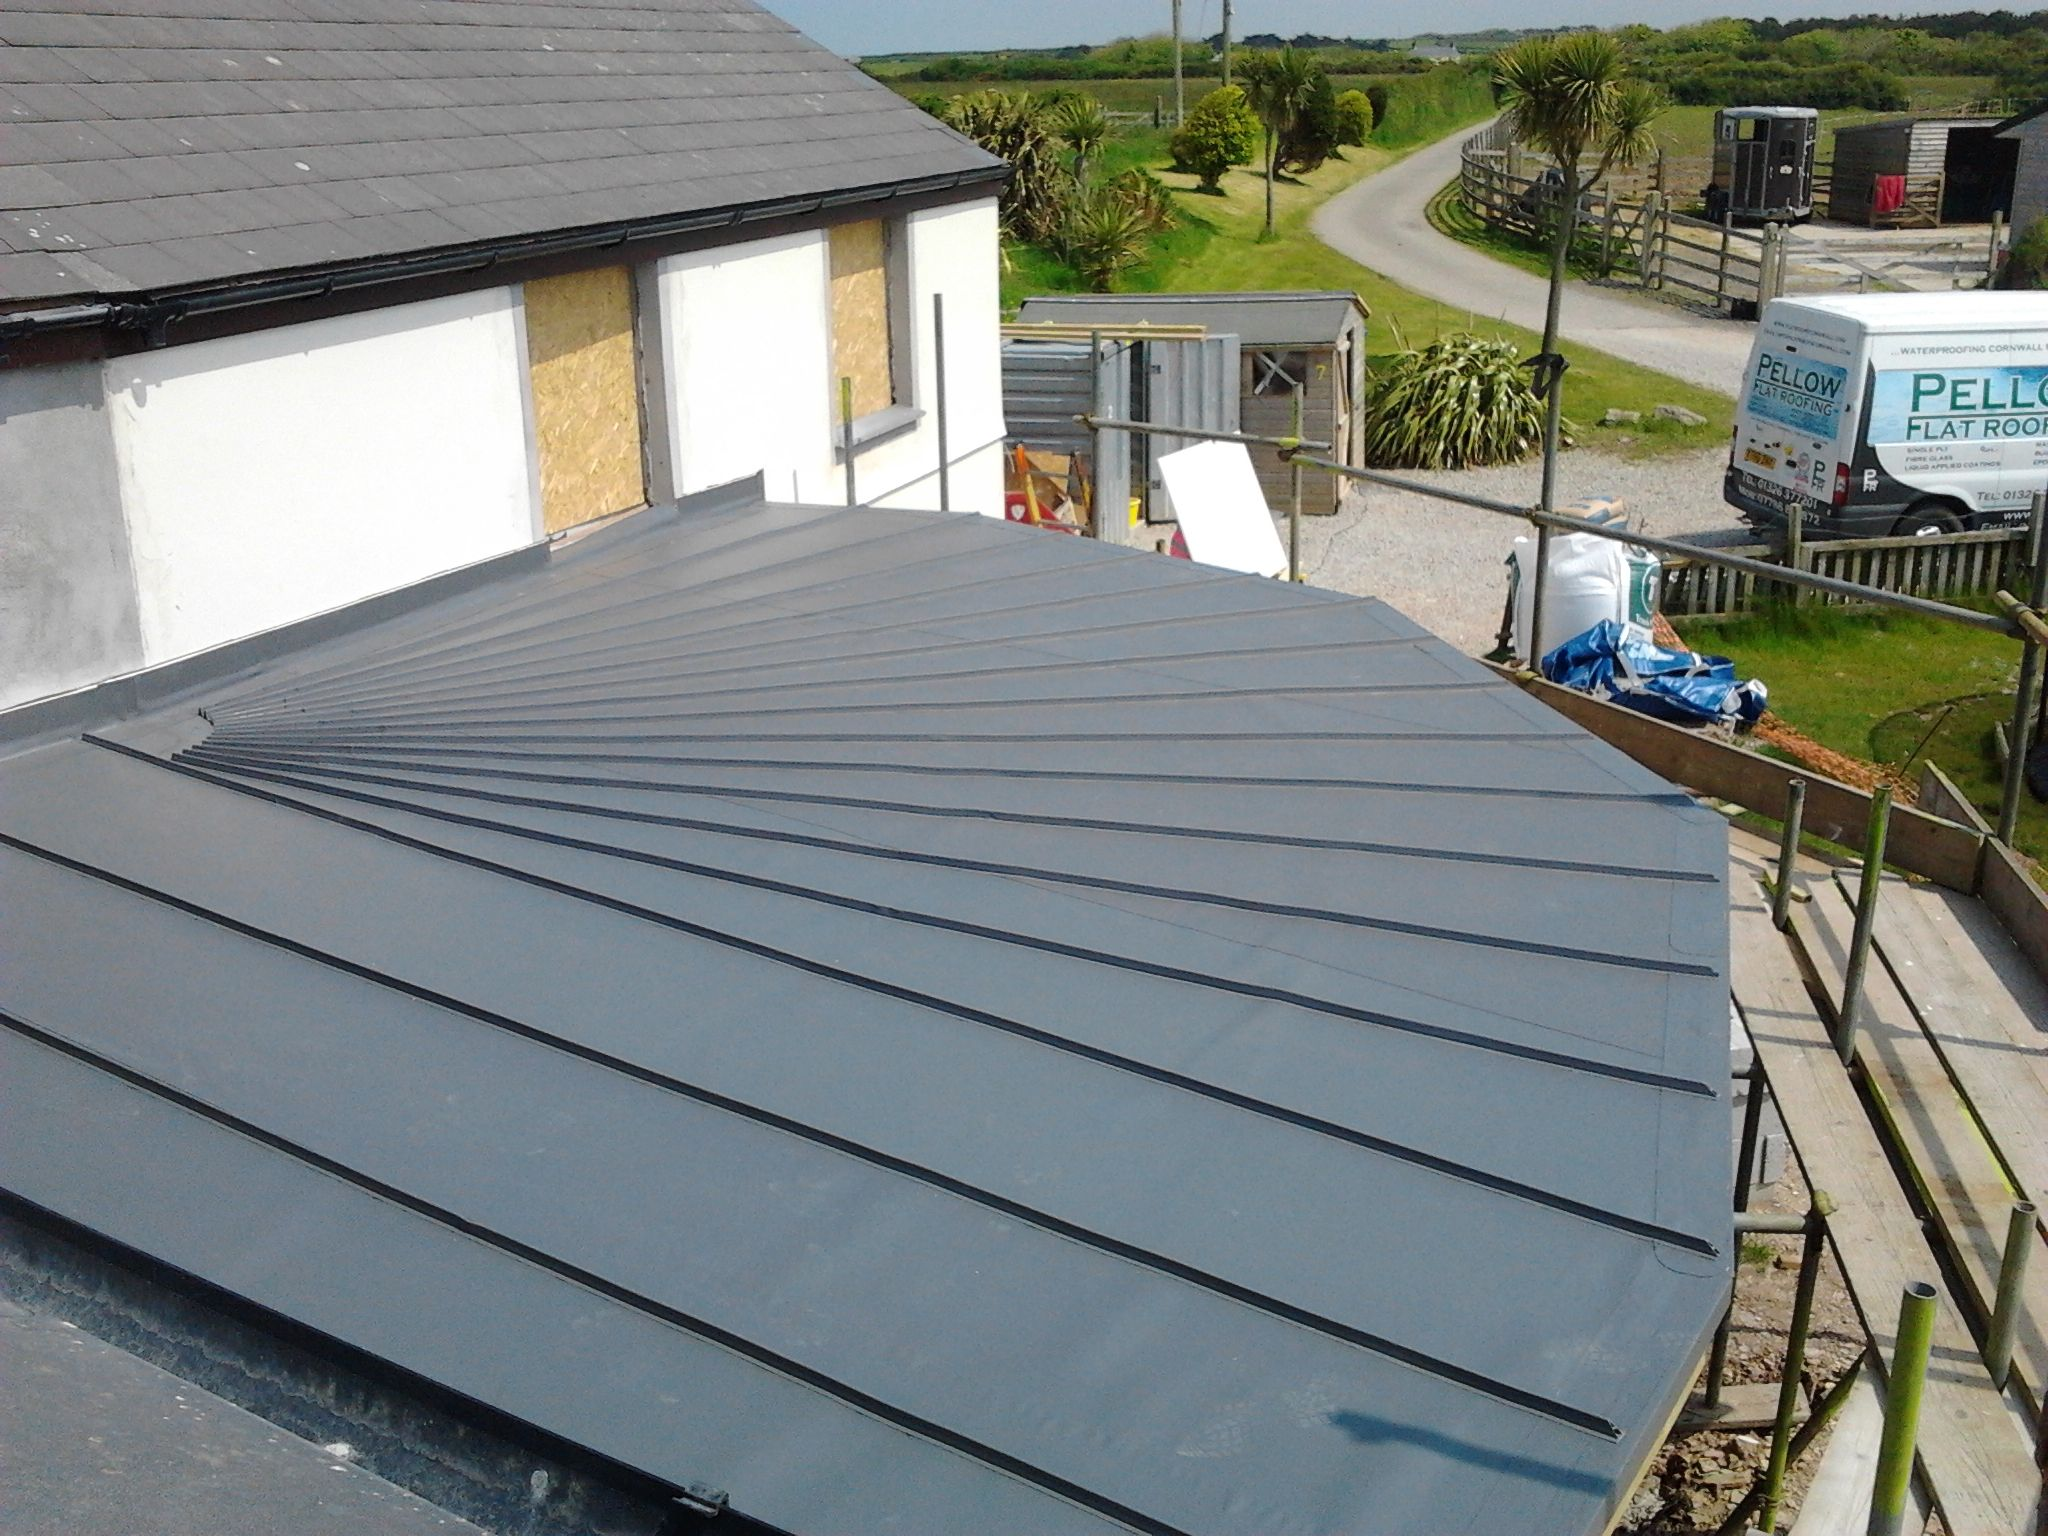 Single Ply Roofing Cornwall Pellow Flat Roofing Ltd Gable Roof Design Roof Architecture Single Ply Roofing